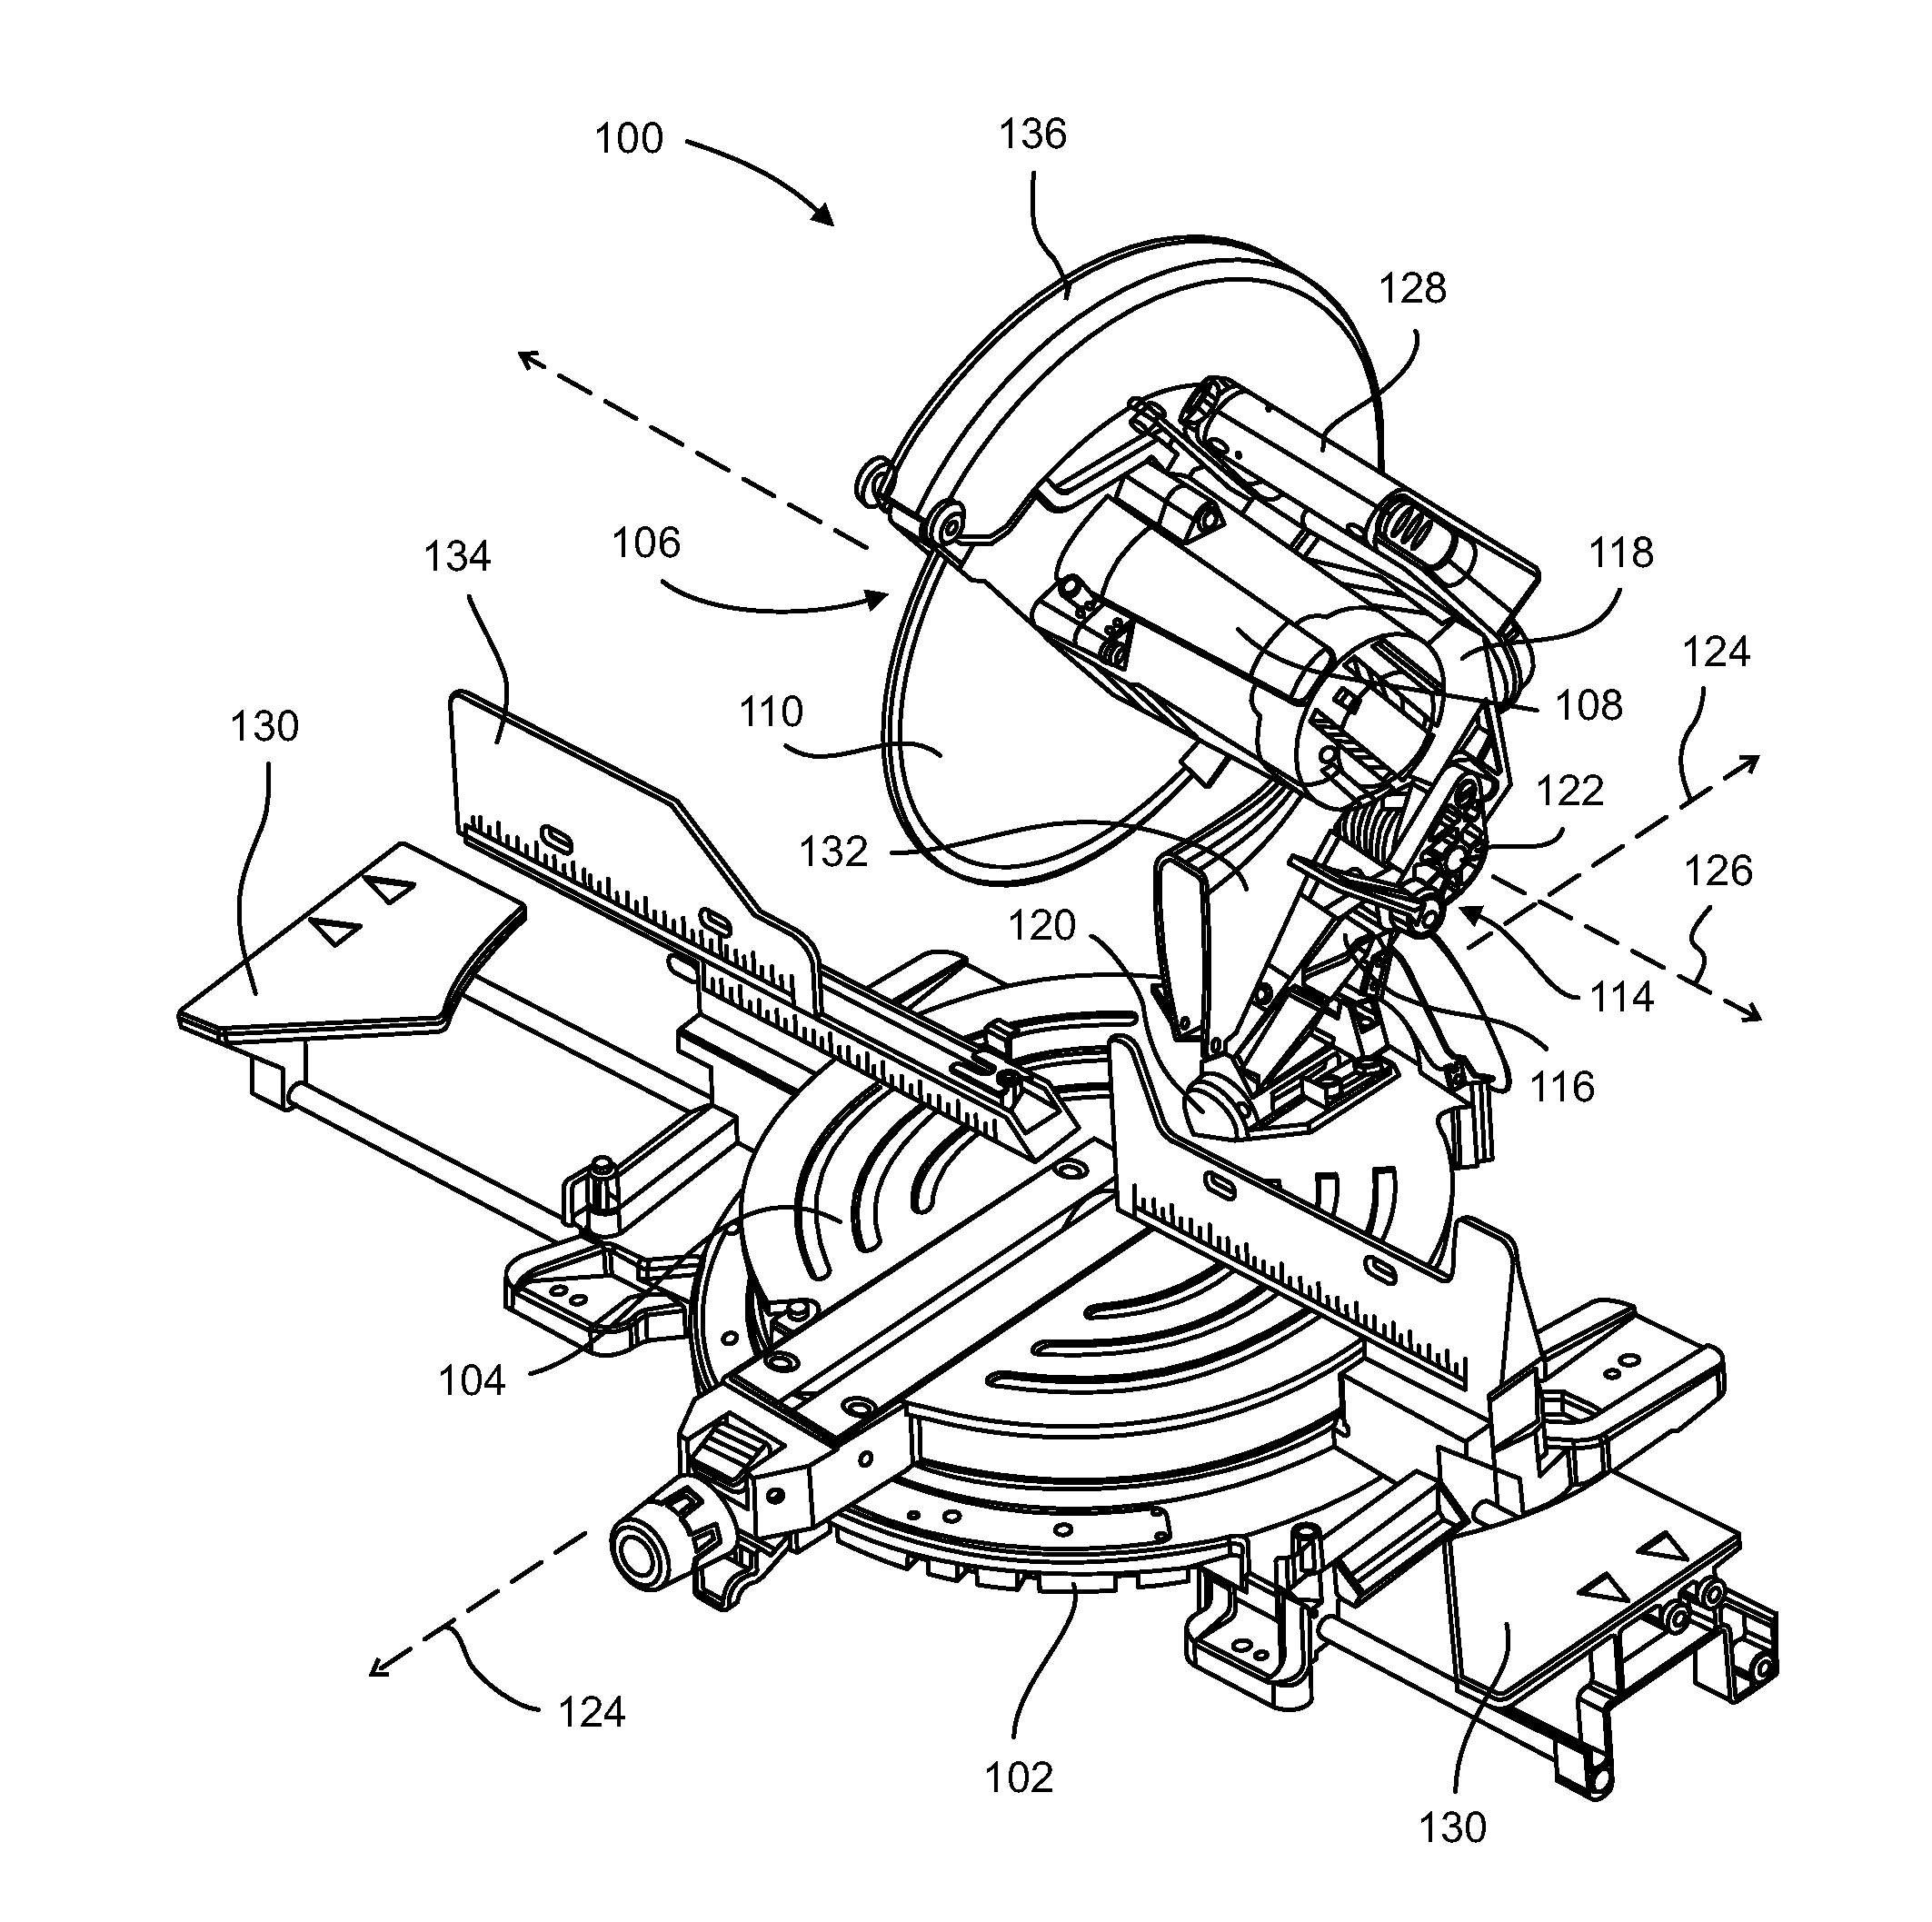 miter saw labeled. patent drawing miter saw labeled e